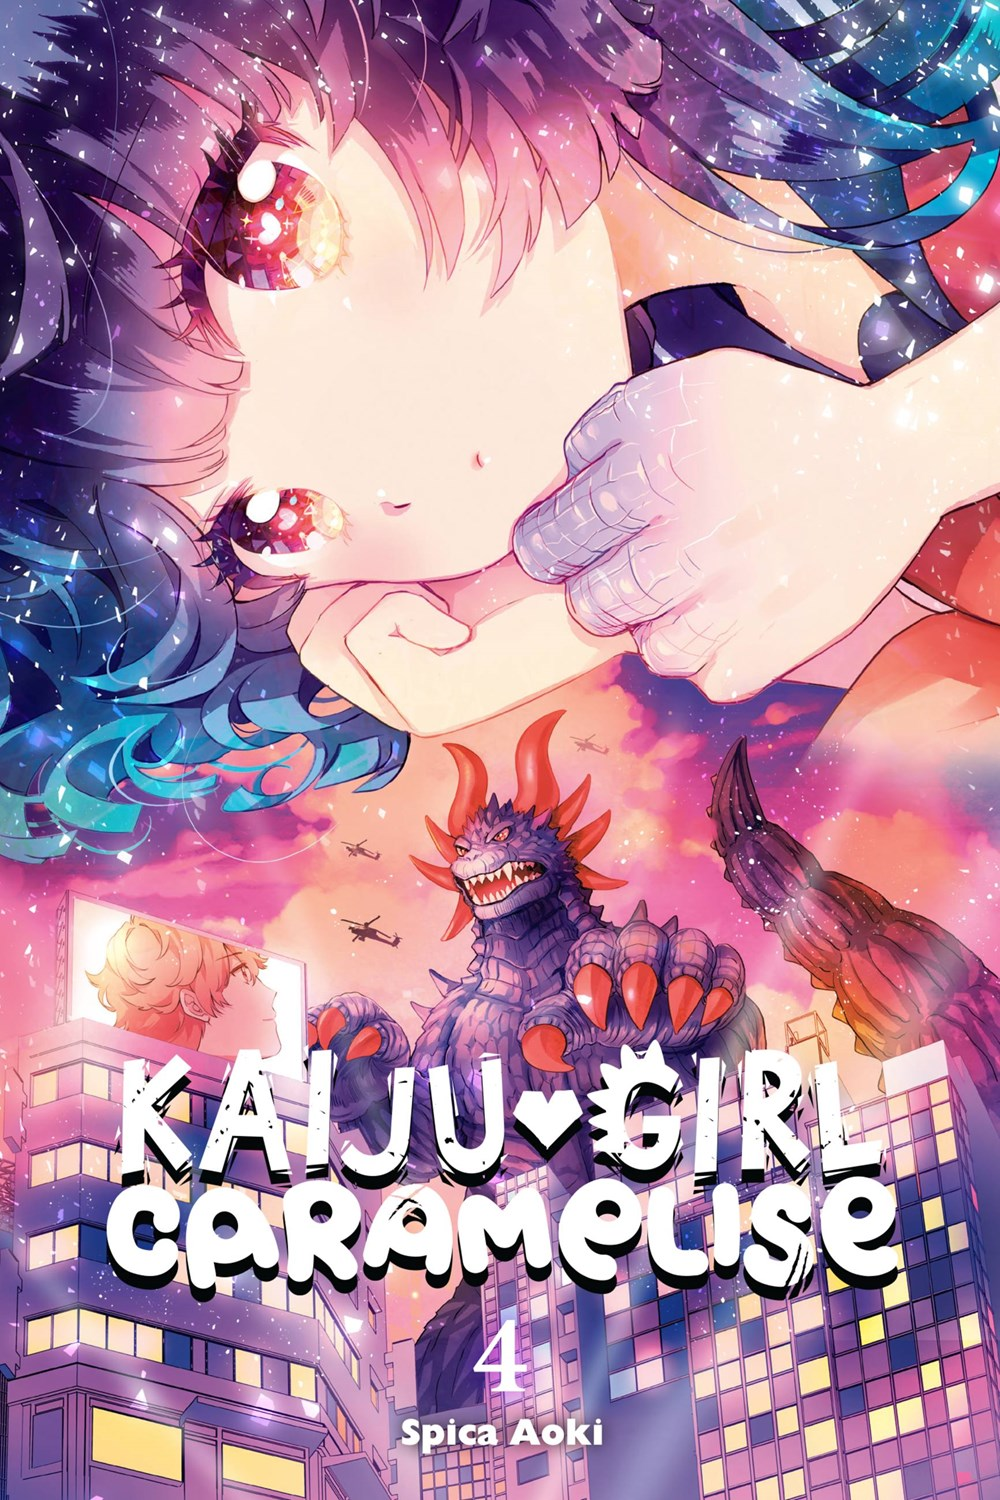 Background image for The Anti-Social Geniuses Review: Kaiju Girl Caramelise Volume 4